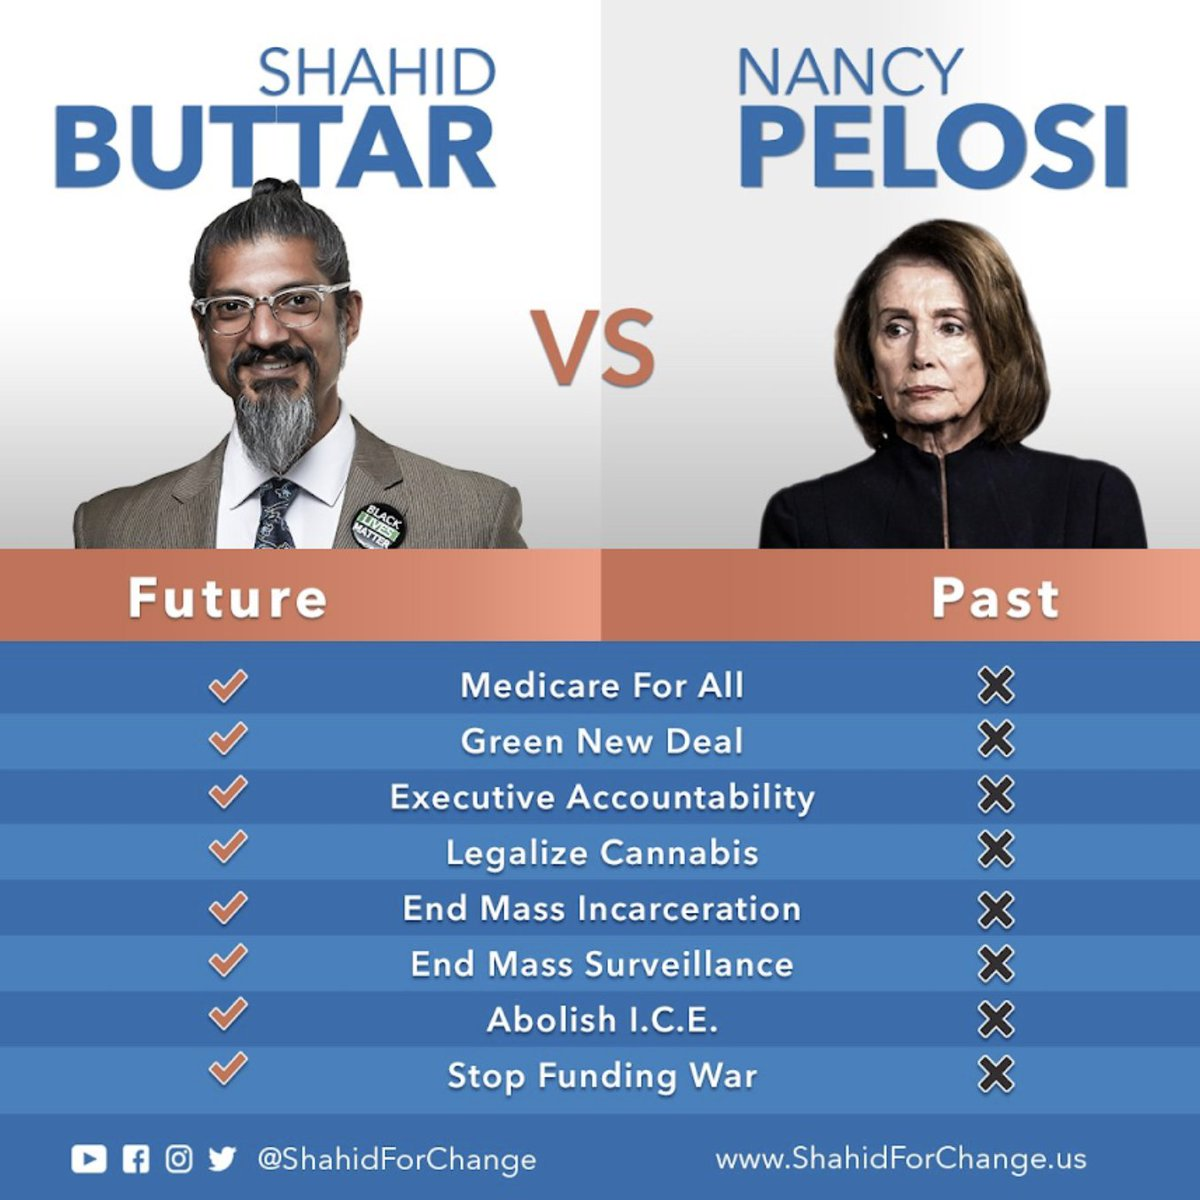 In case people don't know, California is a jungle primary. What that means in the case of #ShahidVsPelosi is that there are only 2 people vying for the seat, both Dems.  So a Dem will 100% hold that seat.  So ignorant people kindly STFU with the vote-shaming BS. #PelosiMustGo<br>http://pic.twitter.com/E5NL7SYpEh